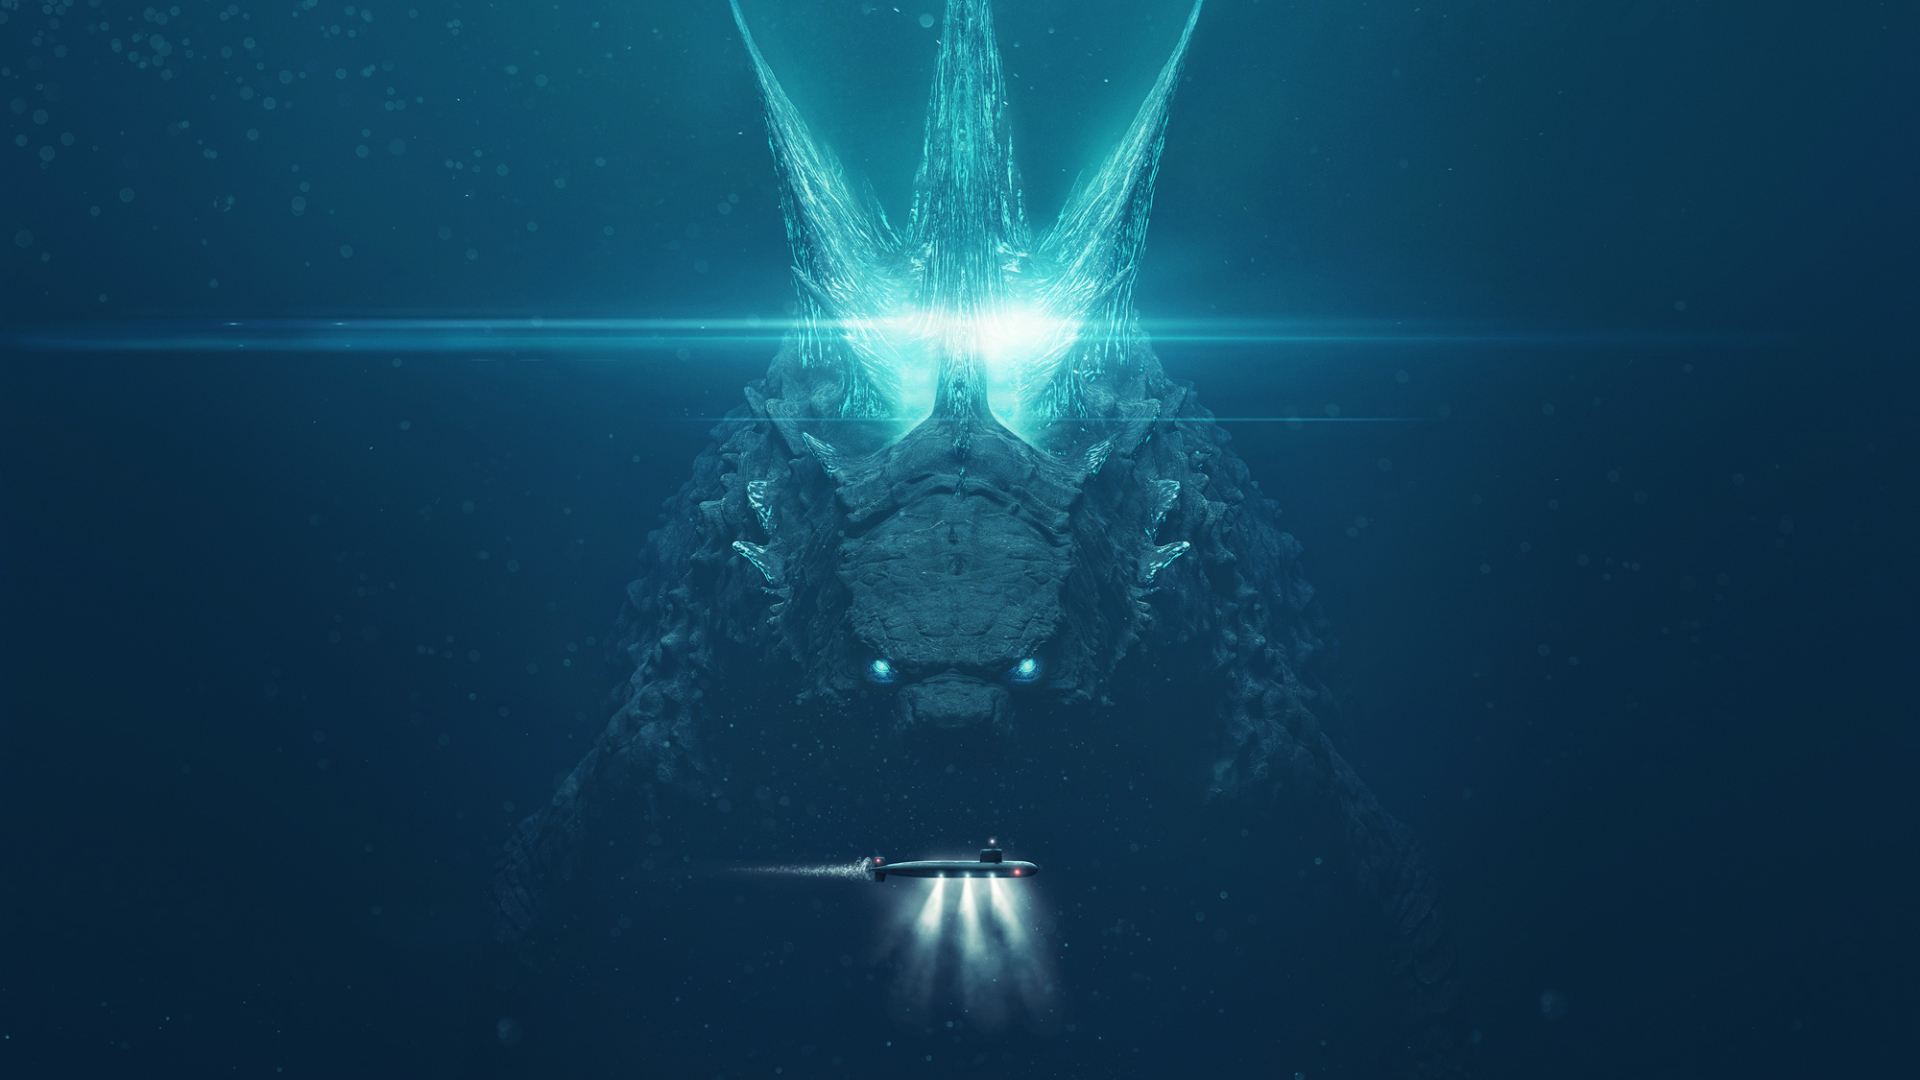 1920x1080 Godzilla King Of The Monsters 2019 Poster 1080P